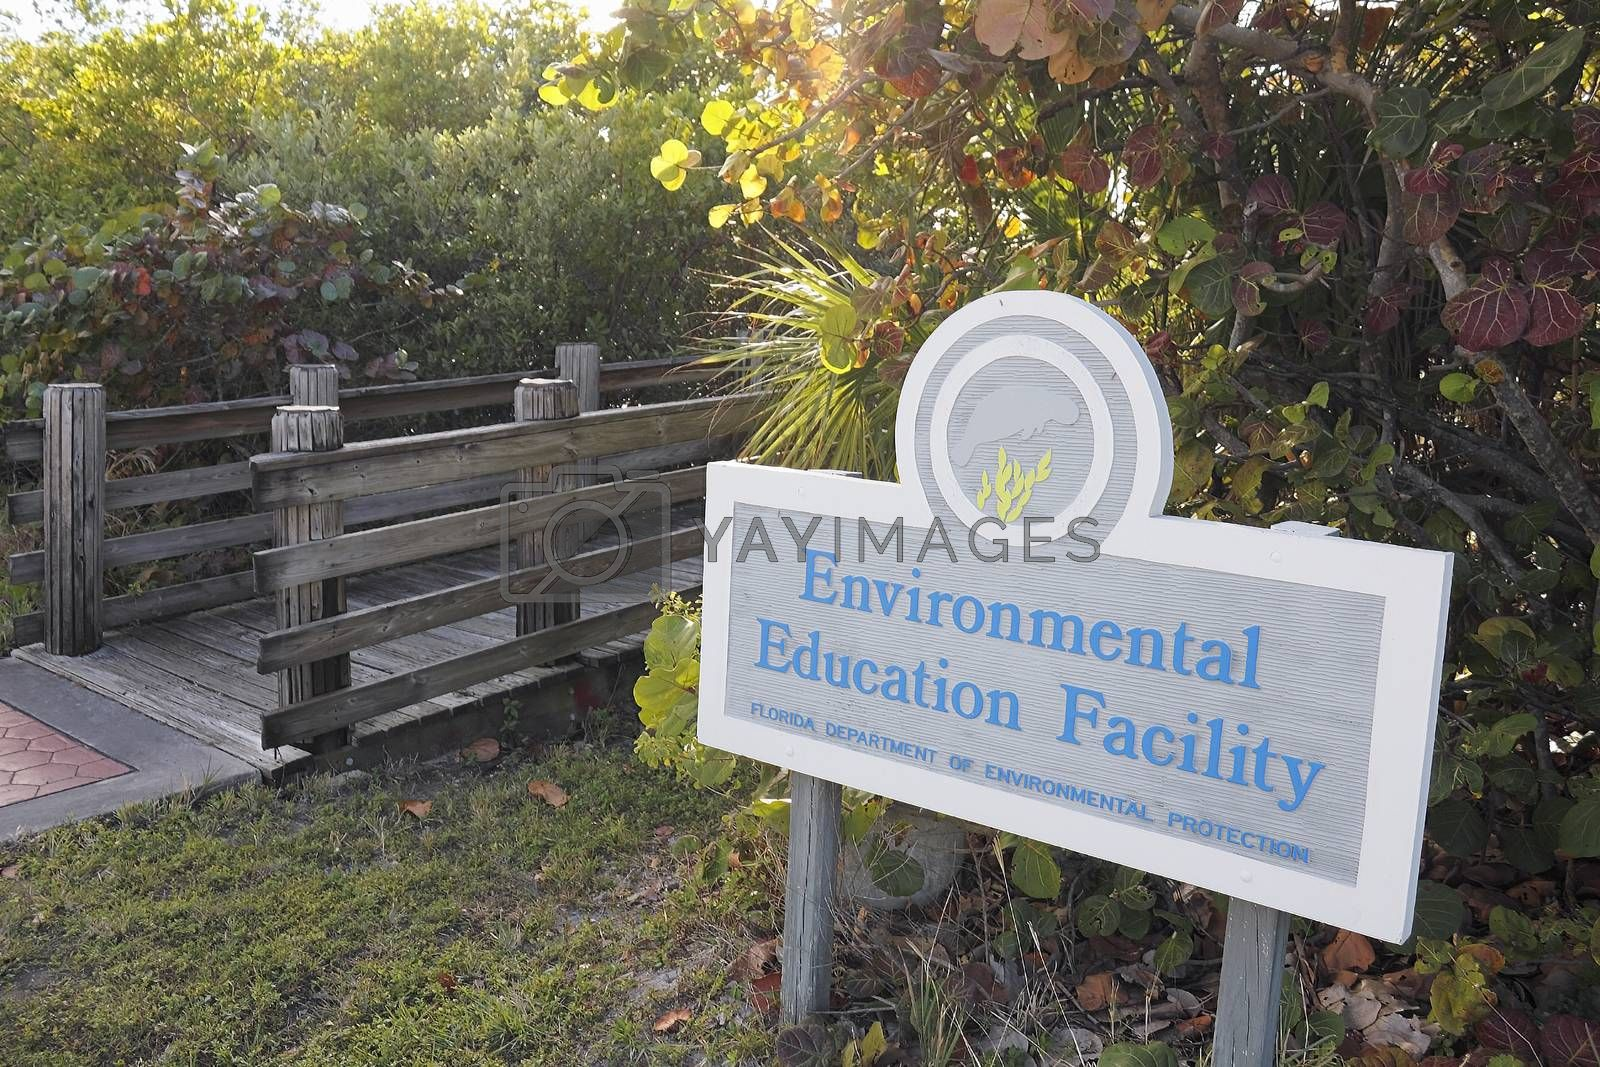 Hollywood, FL, USA - December 20, 2014: Wood foot bridge to the Environmental Education Facility at 9899 N Ocean Dr in John U Lloyd Beach State Park.